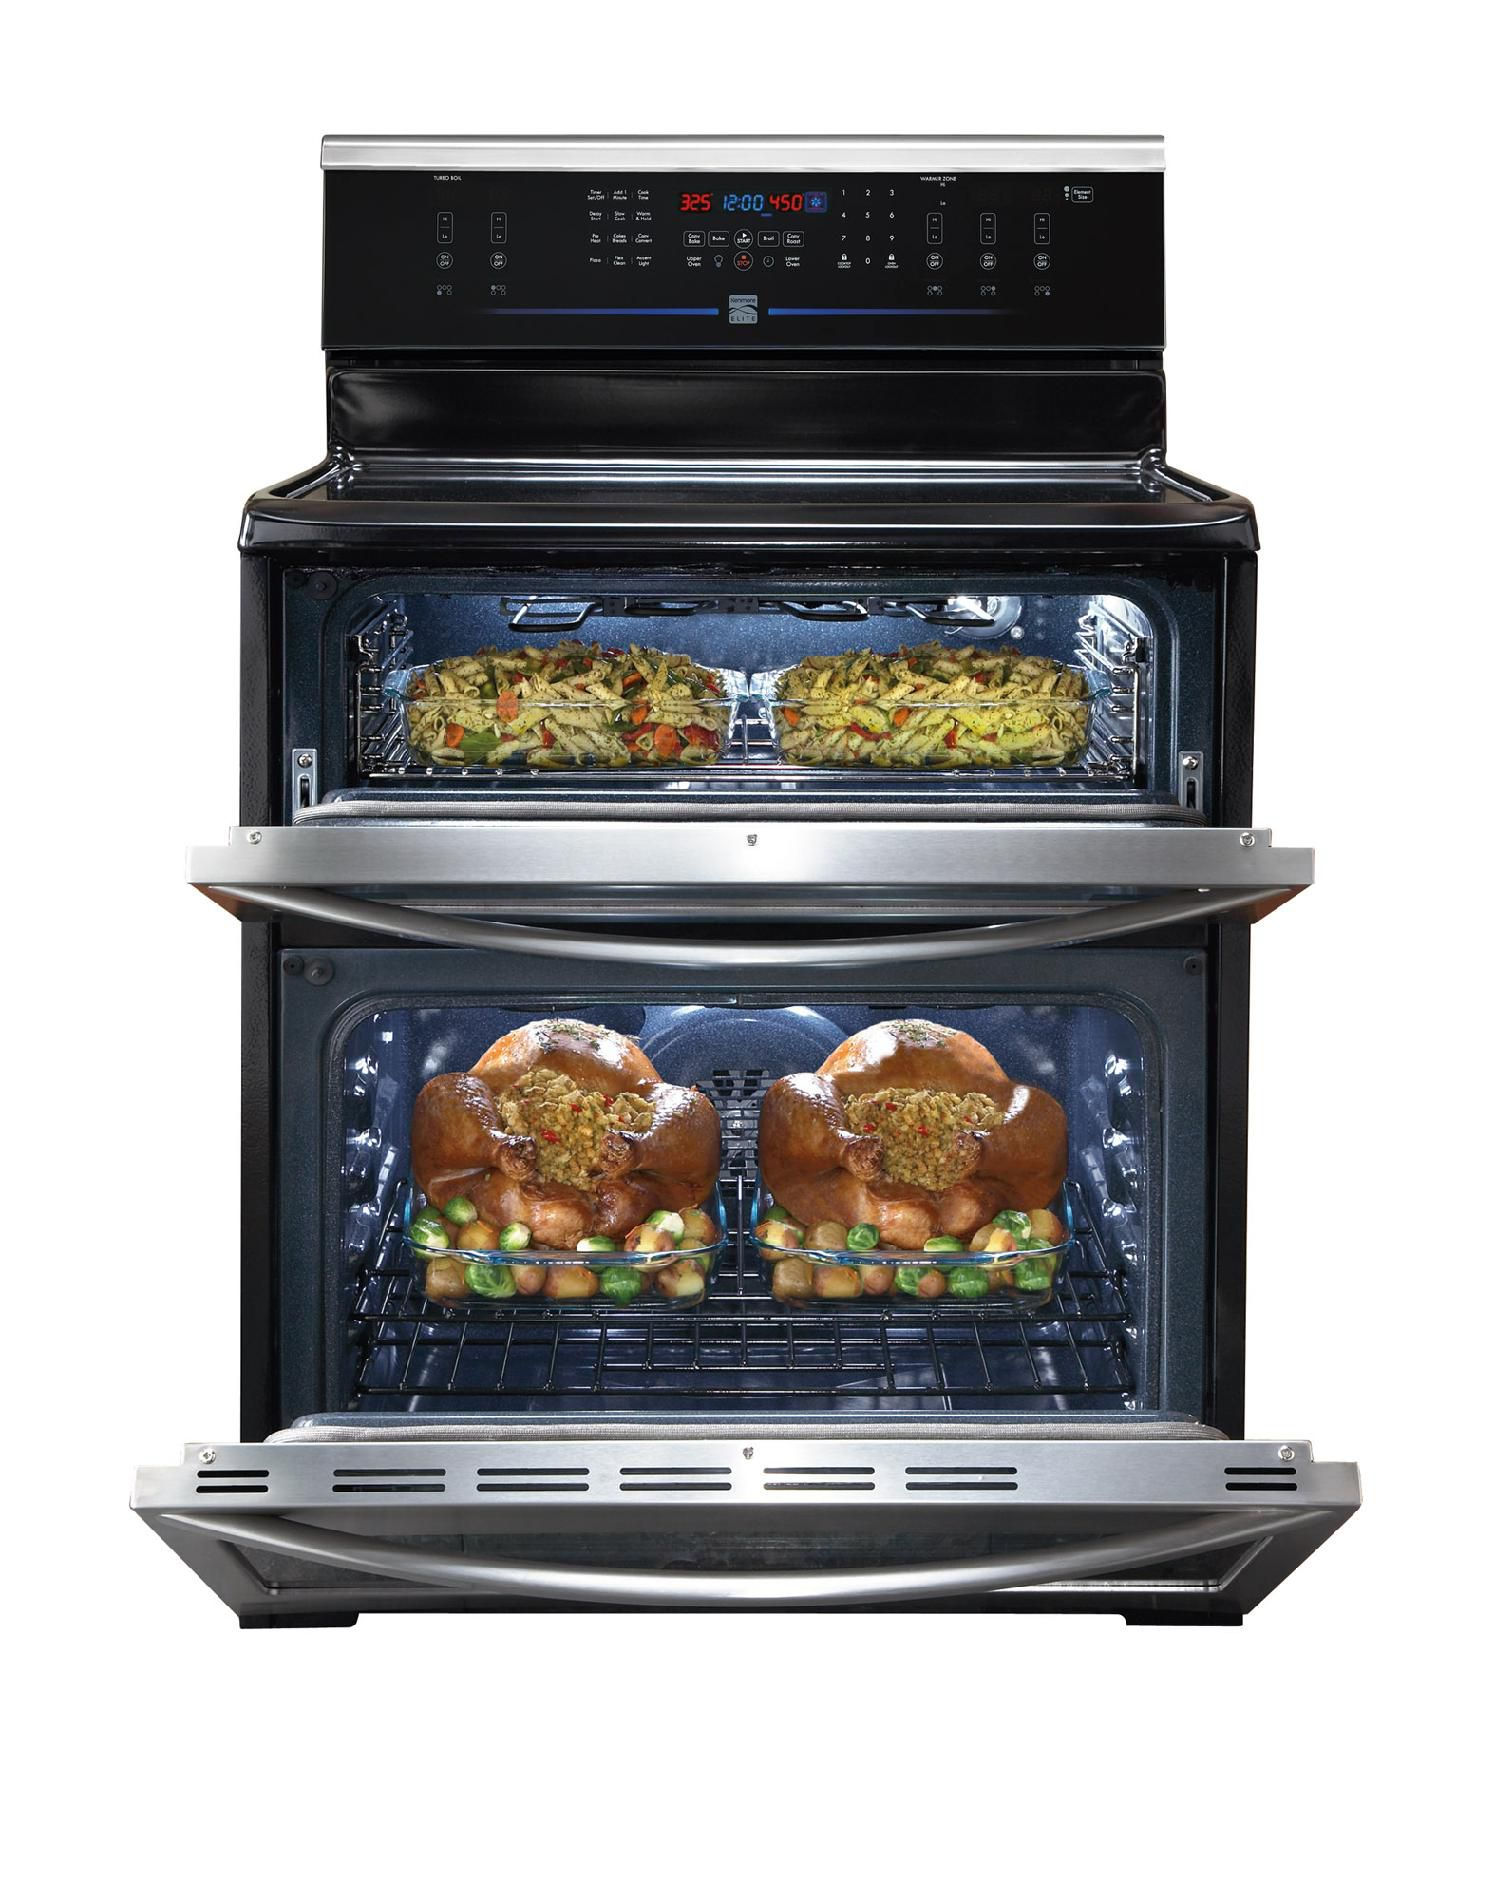 Kenmore Elite 6.64 cu. ft. Double-Oven Electric Range w/ Convection - Stainless Steel